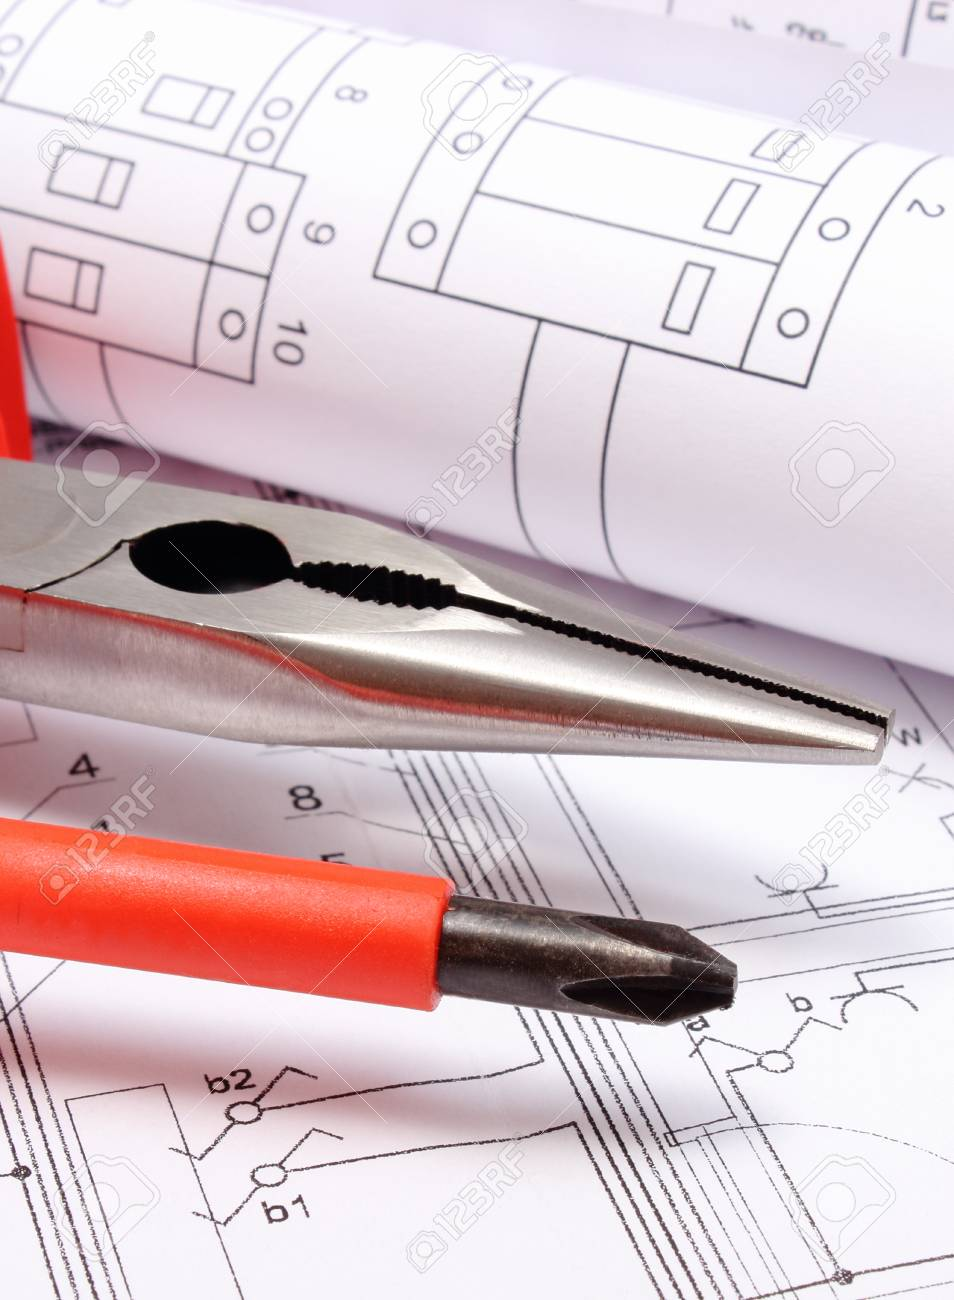 rolled electrical diagrams with work tools lying on construction drawing of house drawings for the